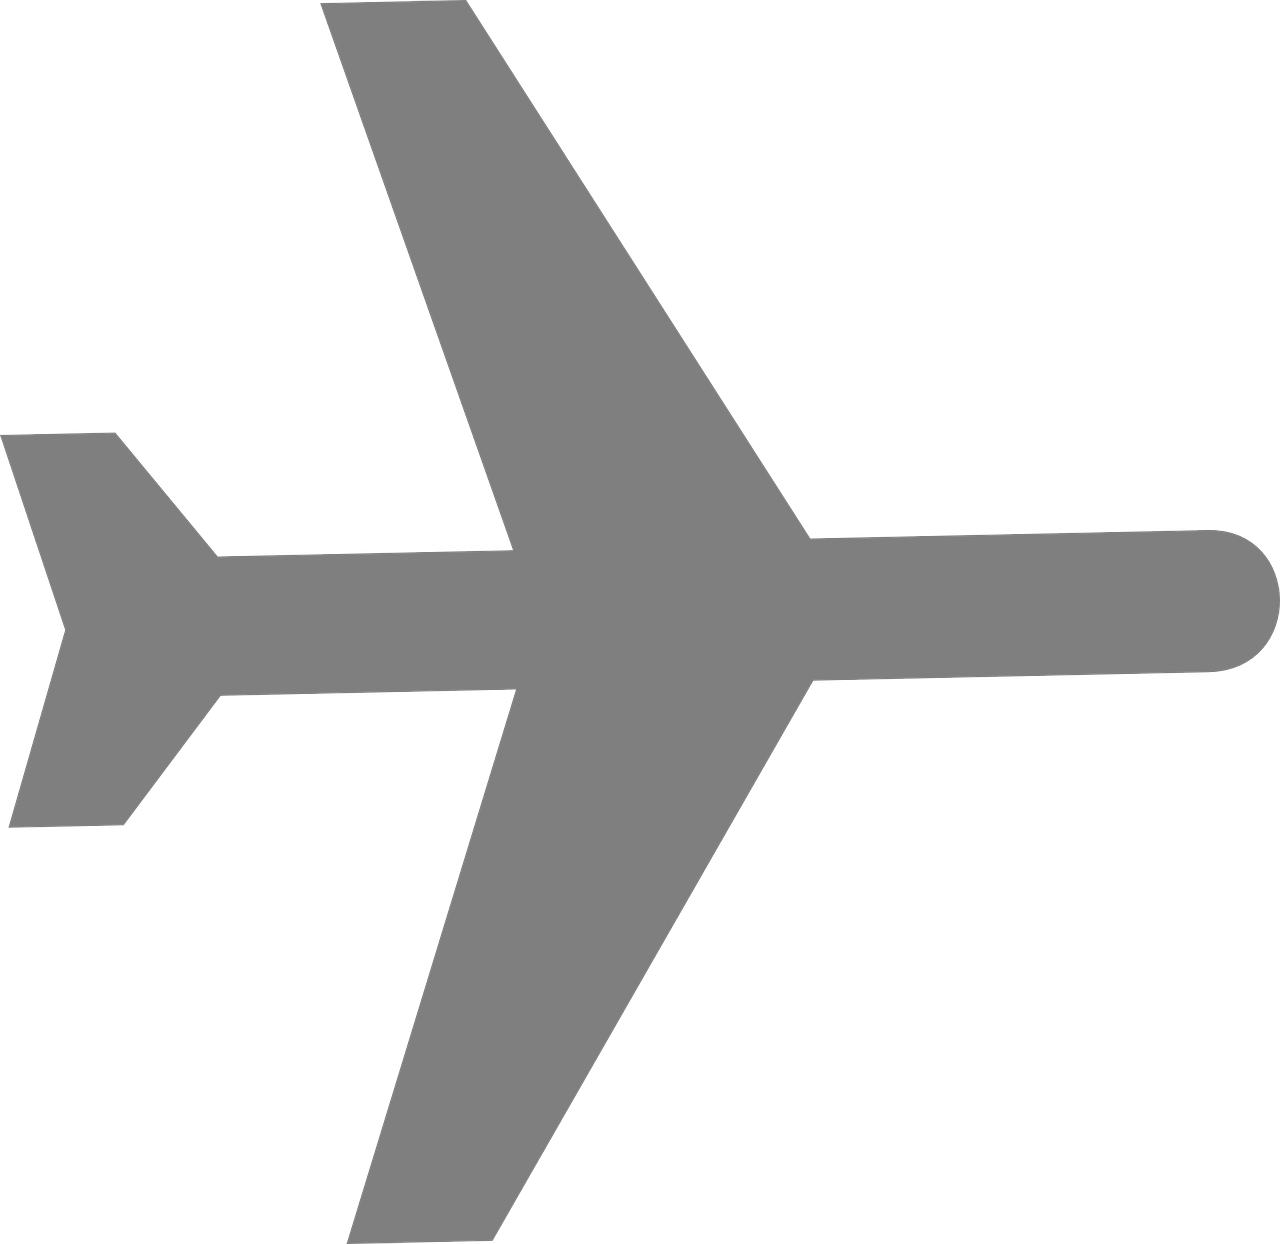 Airplane,aircraft,airline,plane,grey.